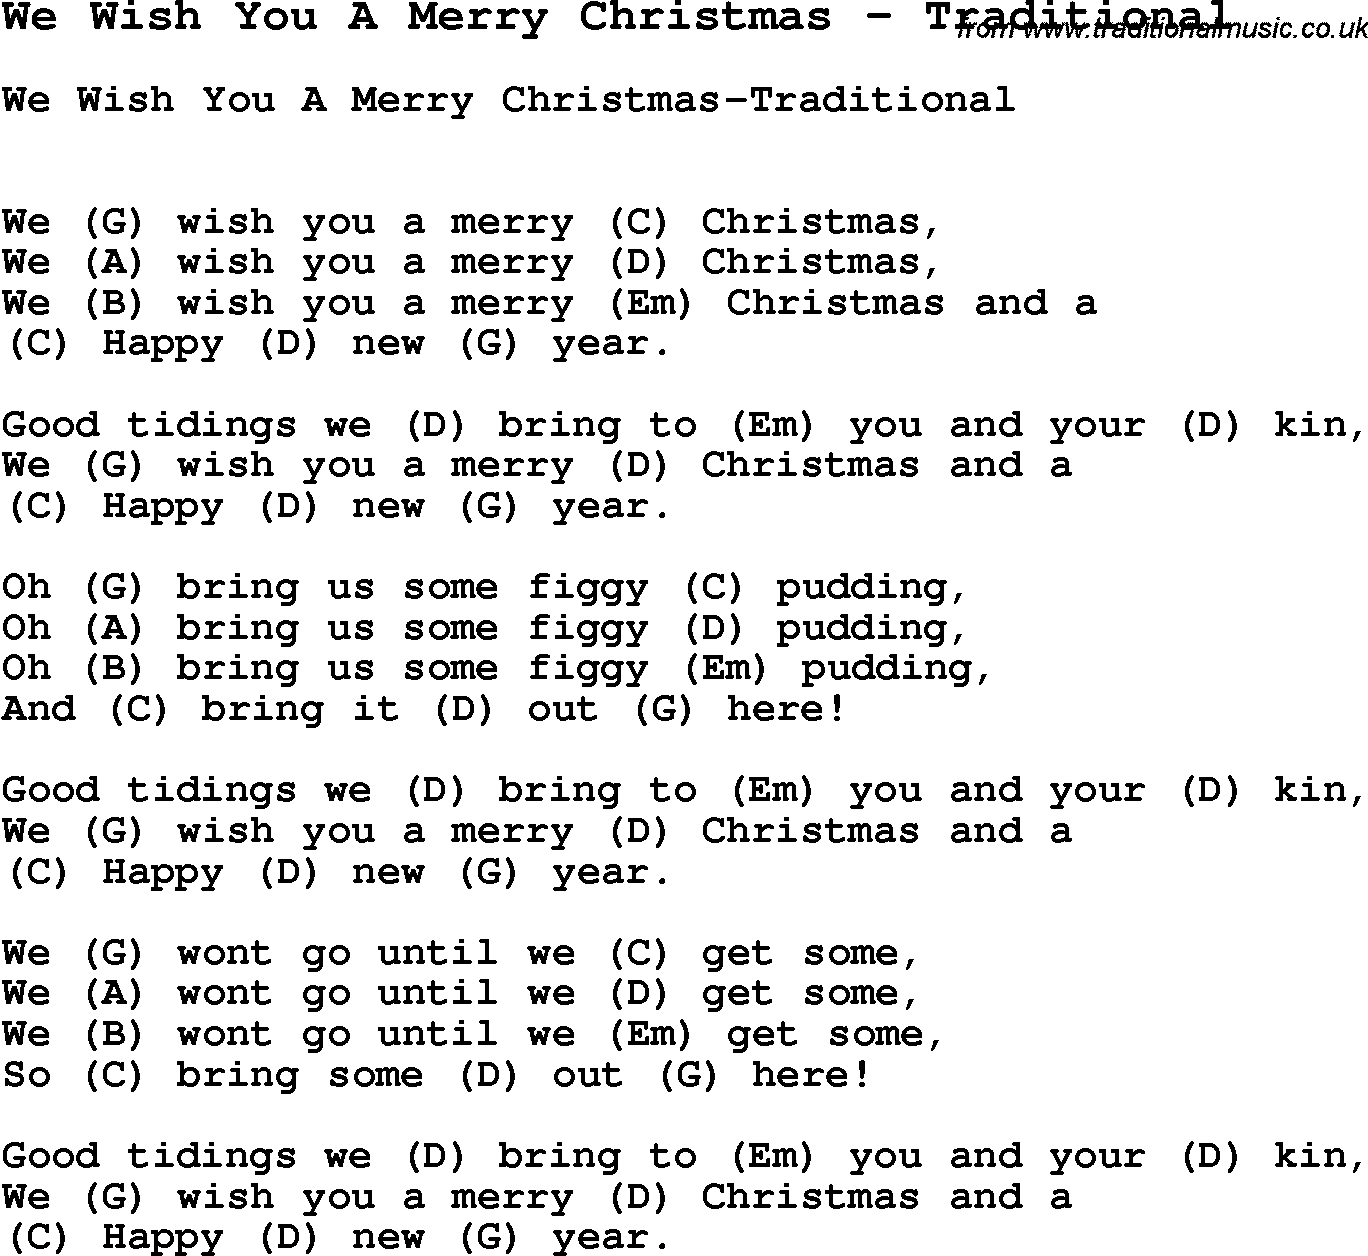 Song We Wish You A Merry Christmas By Traditional With Lyrics For